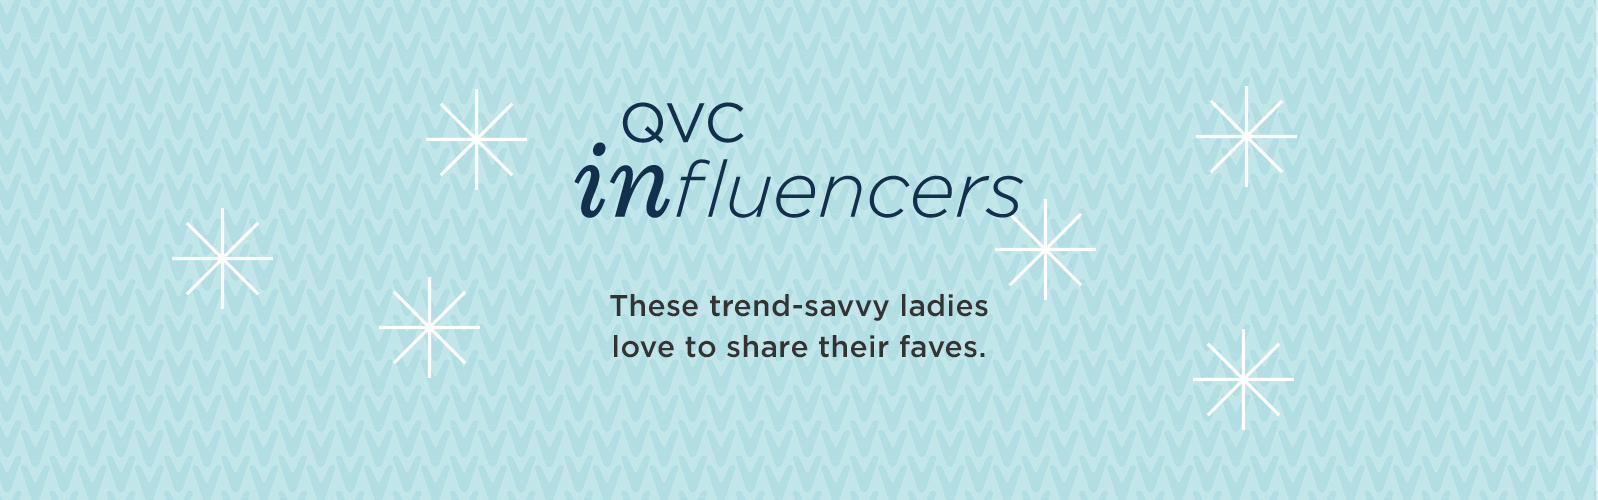 QVC Influencers   Find out what's hot from those in the know